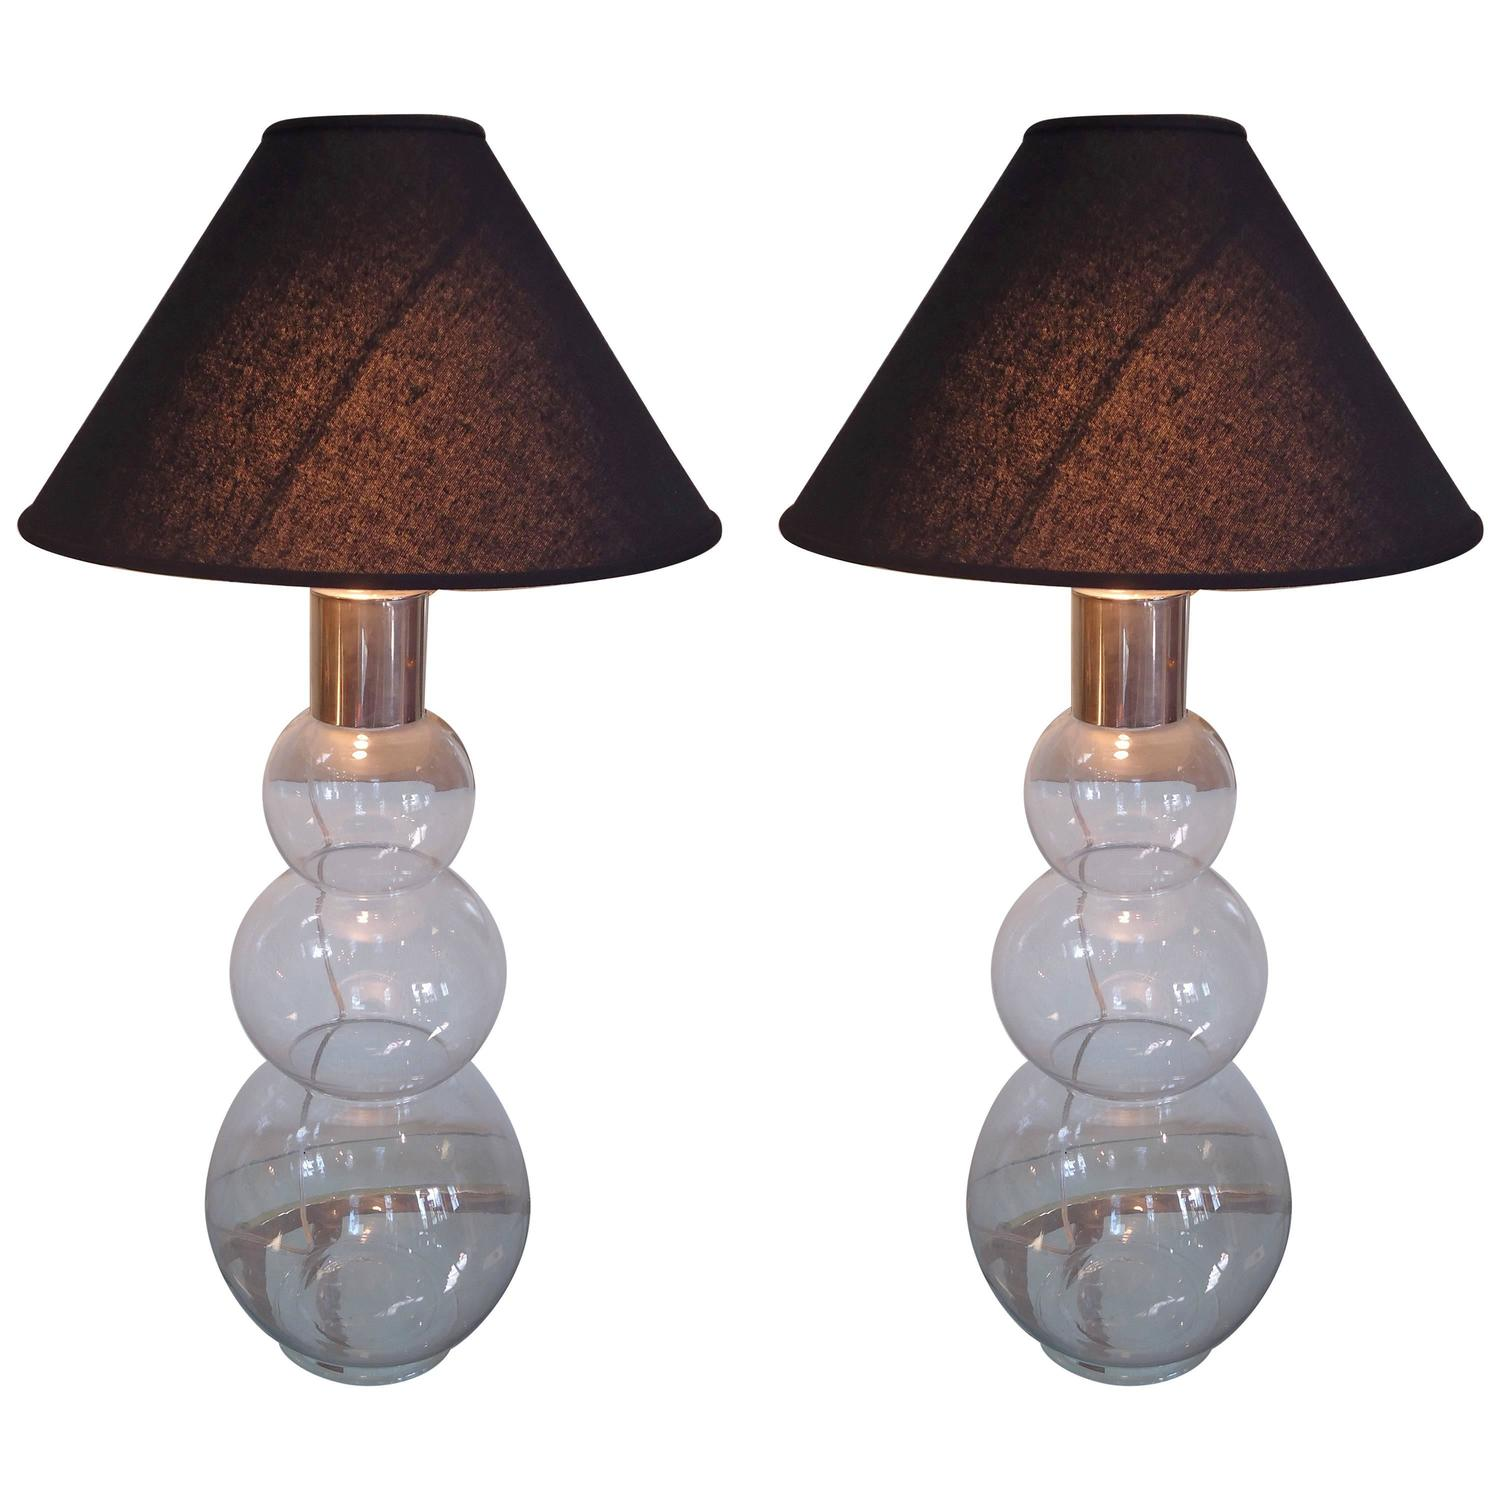 Pair Of Mid Century Modern Tall Bubble Lamps At 1stdibs